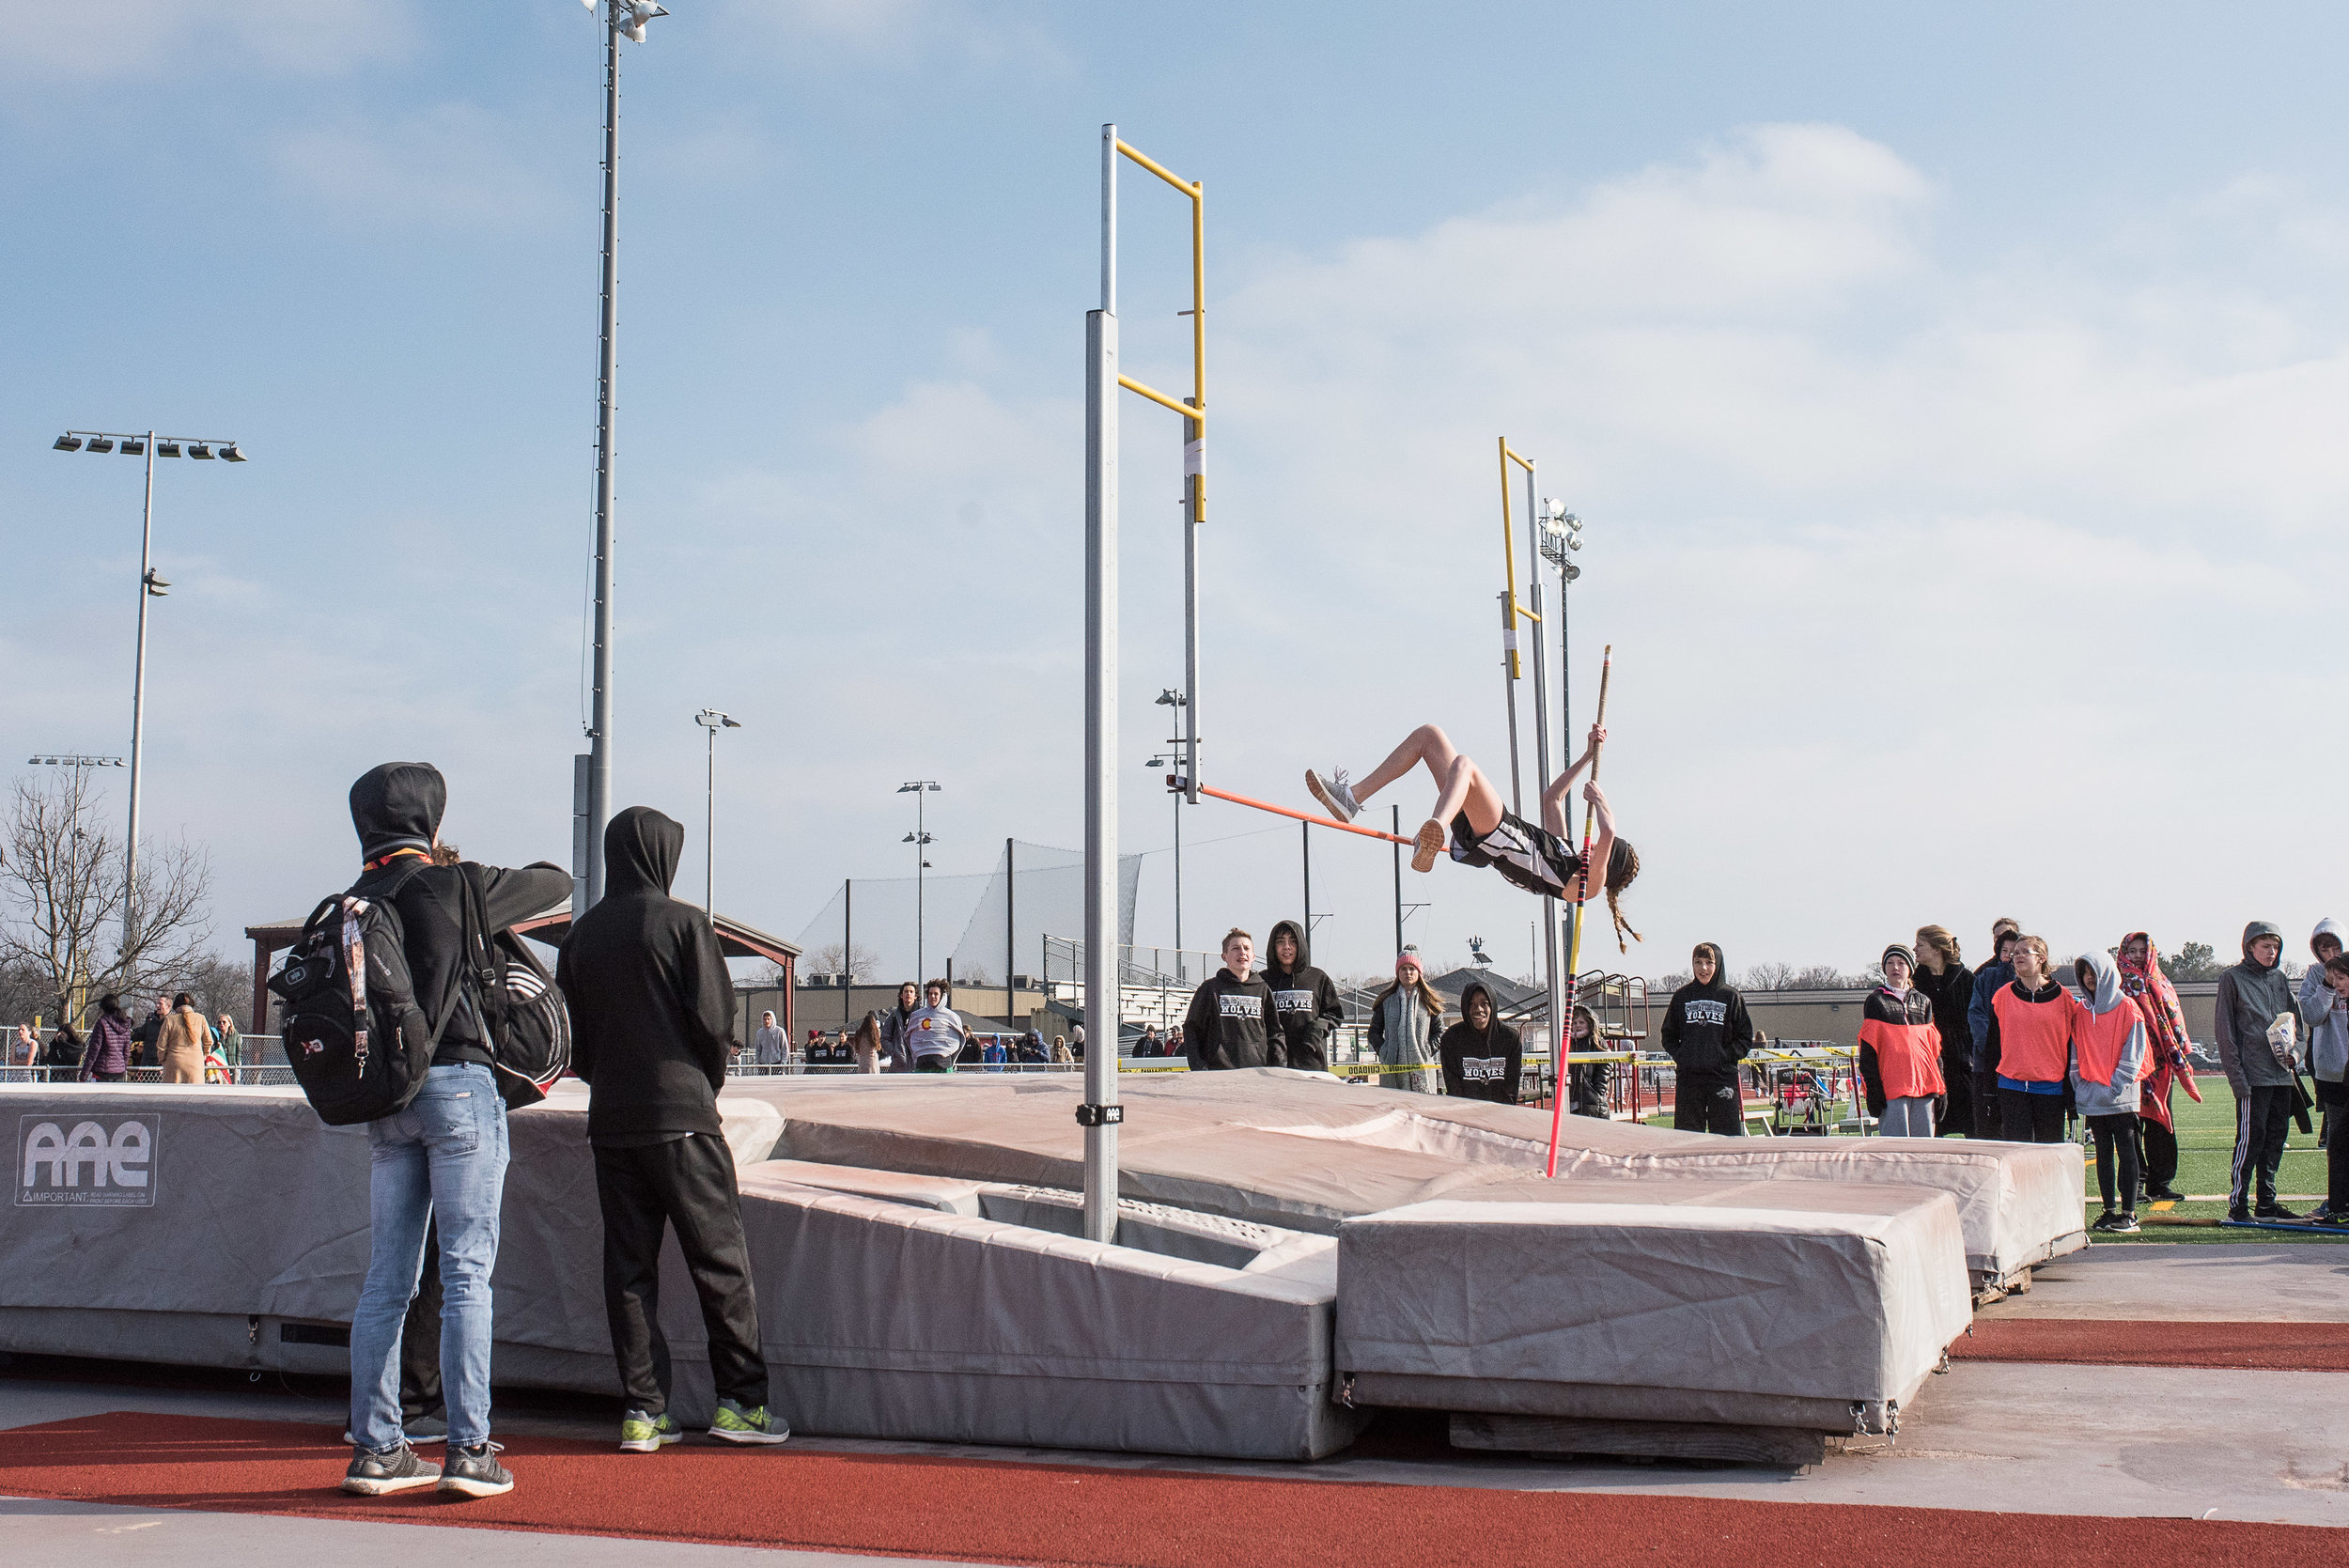 Track and Field season kicked off with a frigidly cold meet.